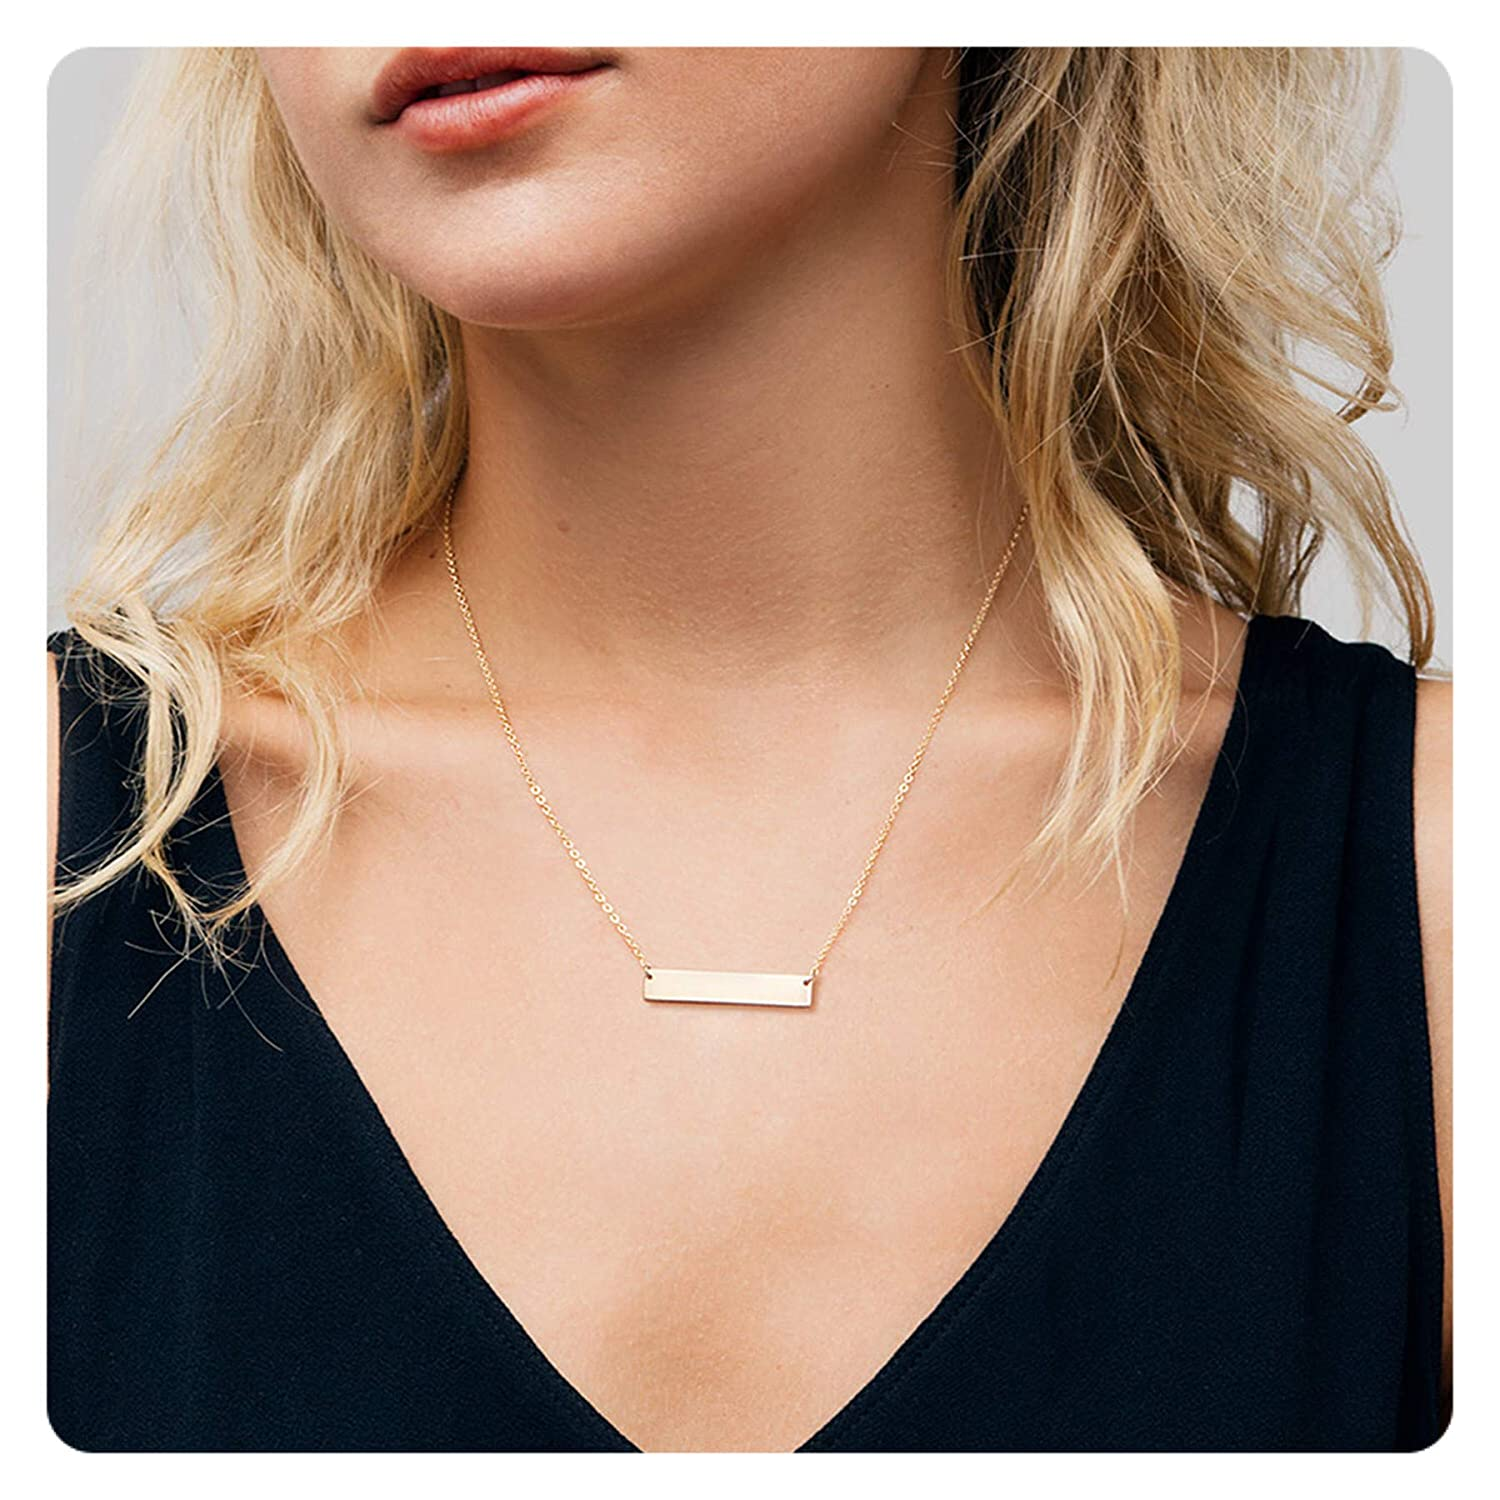 Fremttly Womens Simple Delicate Handmade 14K Gold Filled Simple Delicate Heart and Bar Necklace Chokers Necklace NK-Black 3Layered